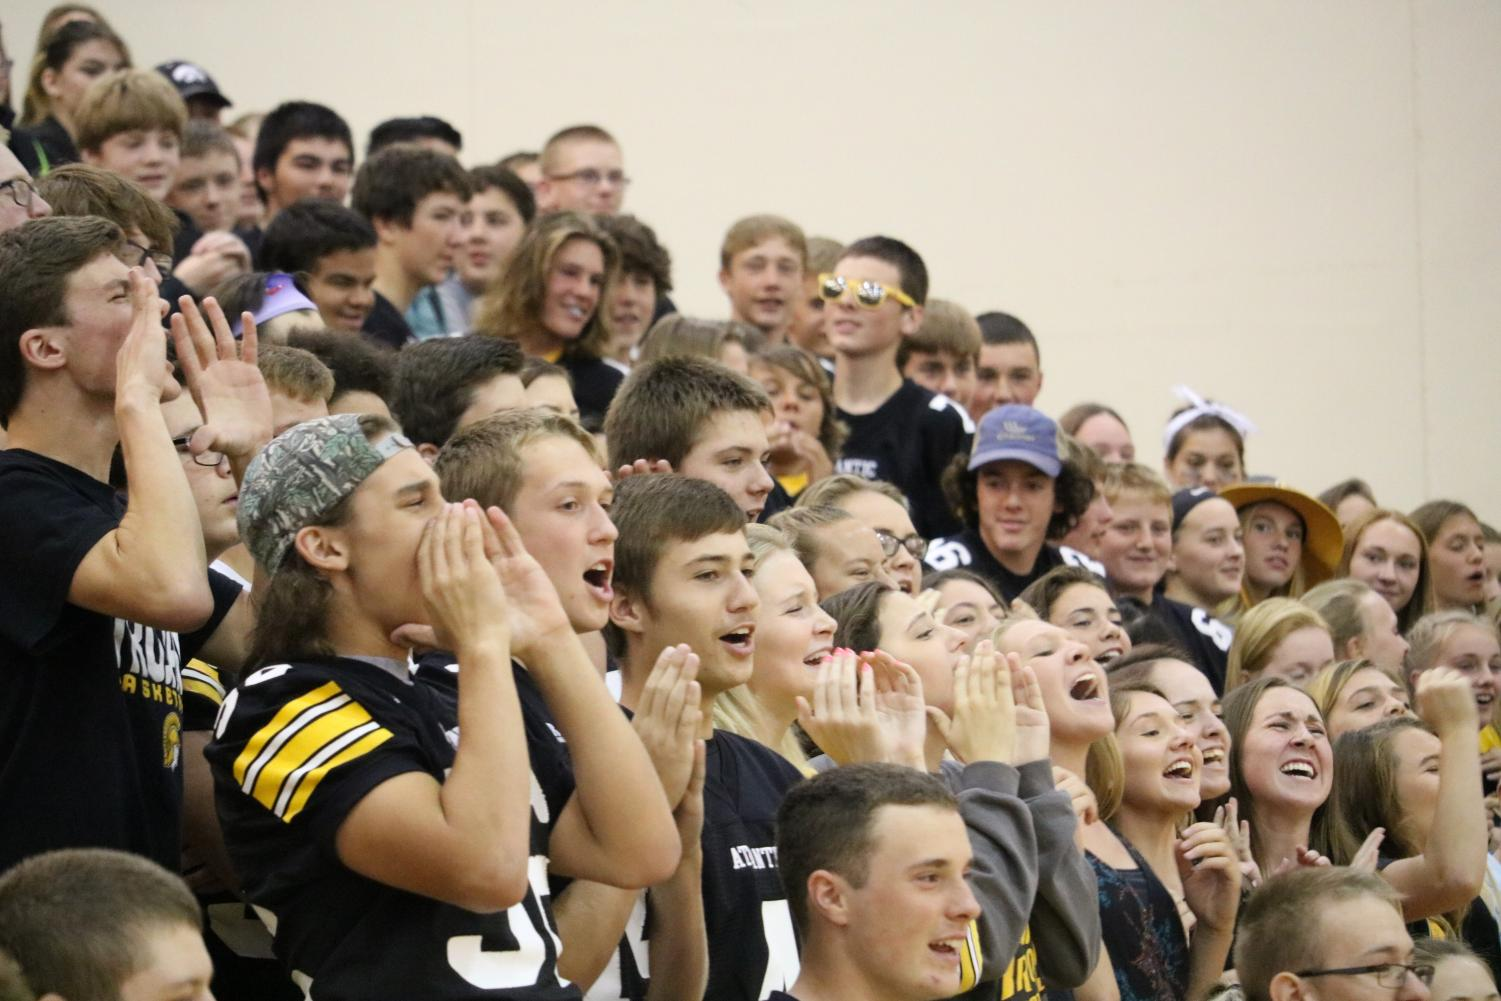 PUMP IT UP - Students cheer in the auditorium at a pep rally. The Trojans played Creston for the 2017 homecoming game, winning in overtime.